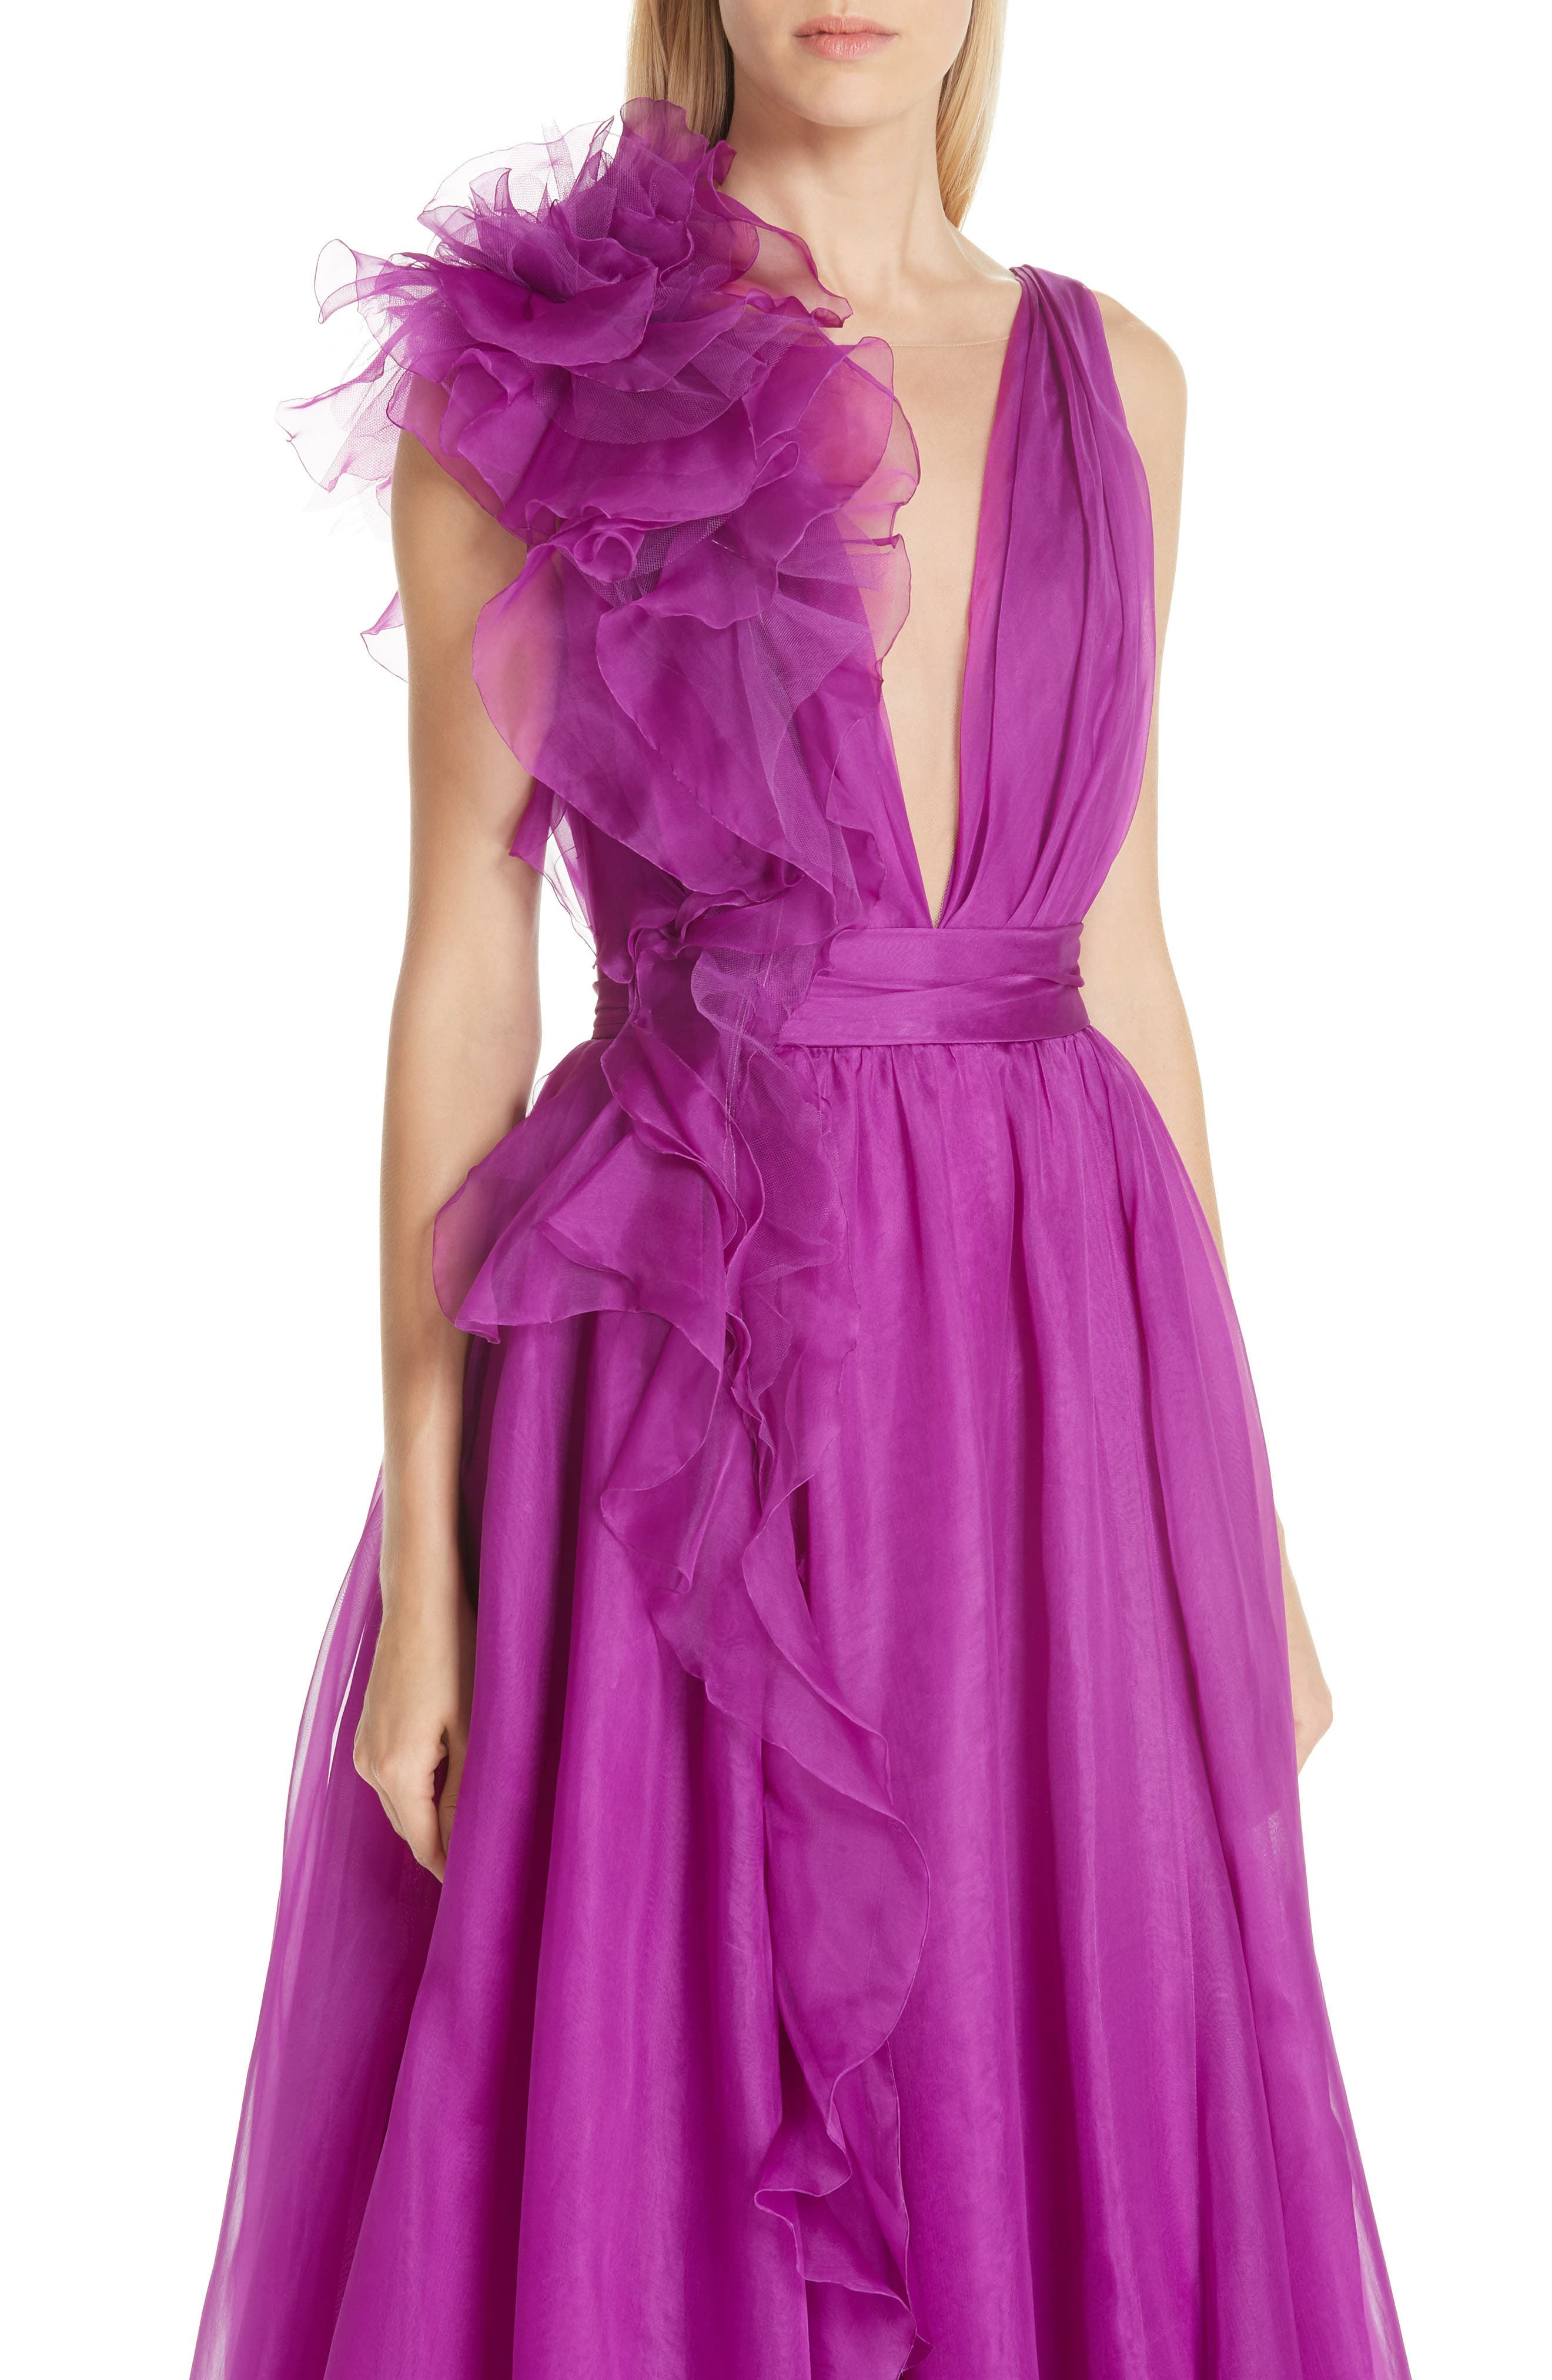 Ruffle Silk Organza Evening Dress,                             Alternate thumbnail 4, color,                             ORCHID